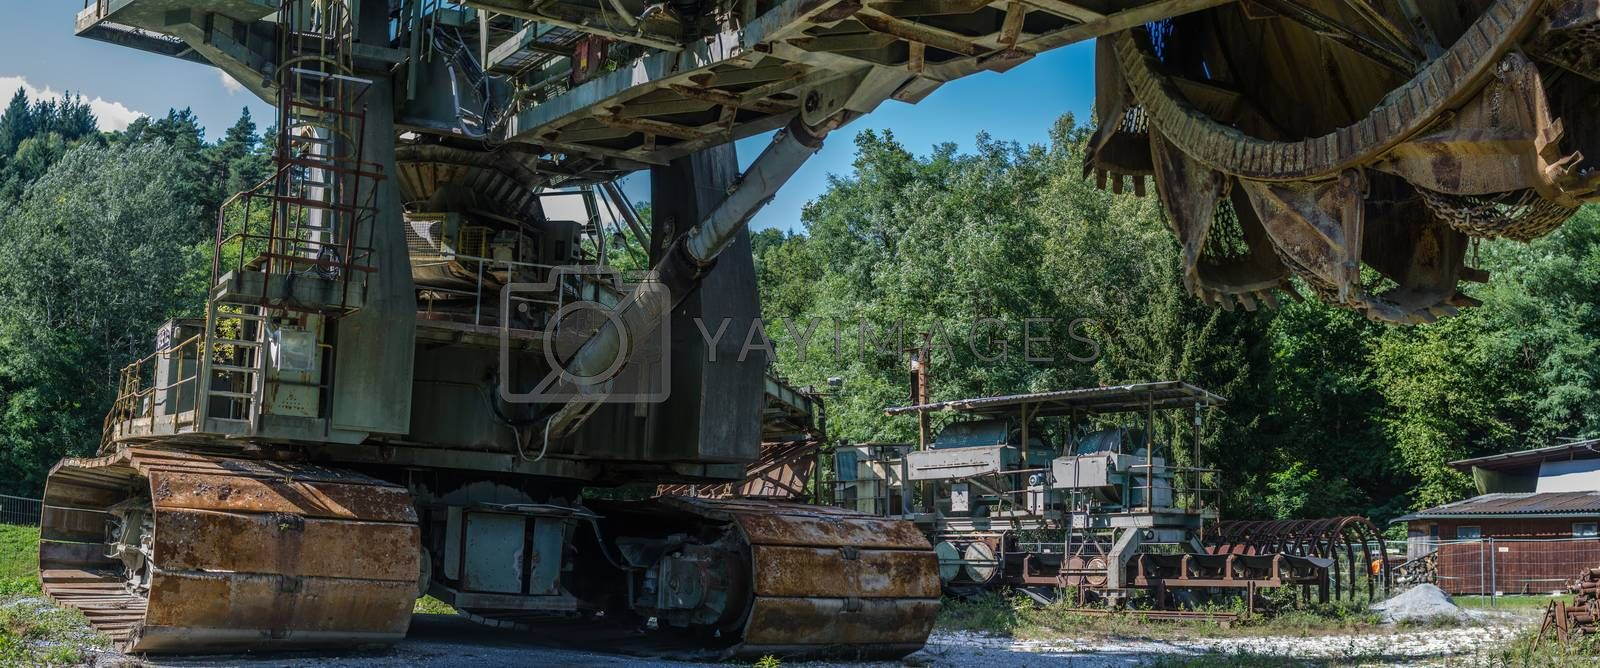 bucket wheel excavator detail panorama view